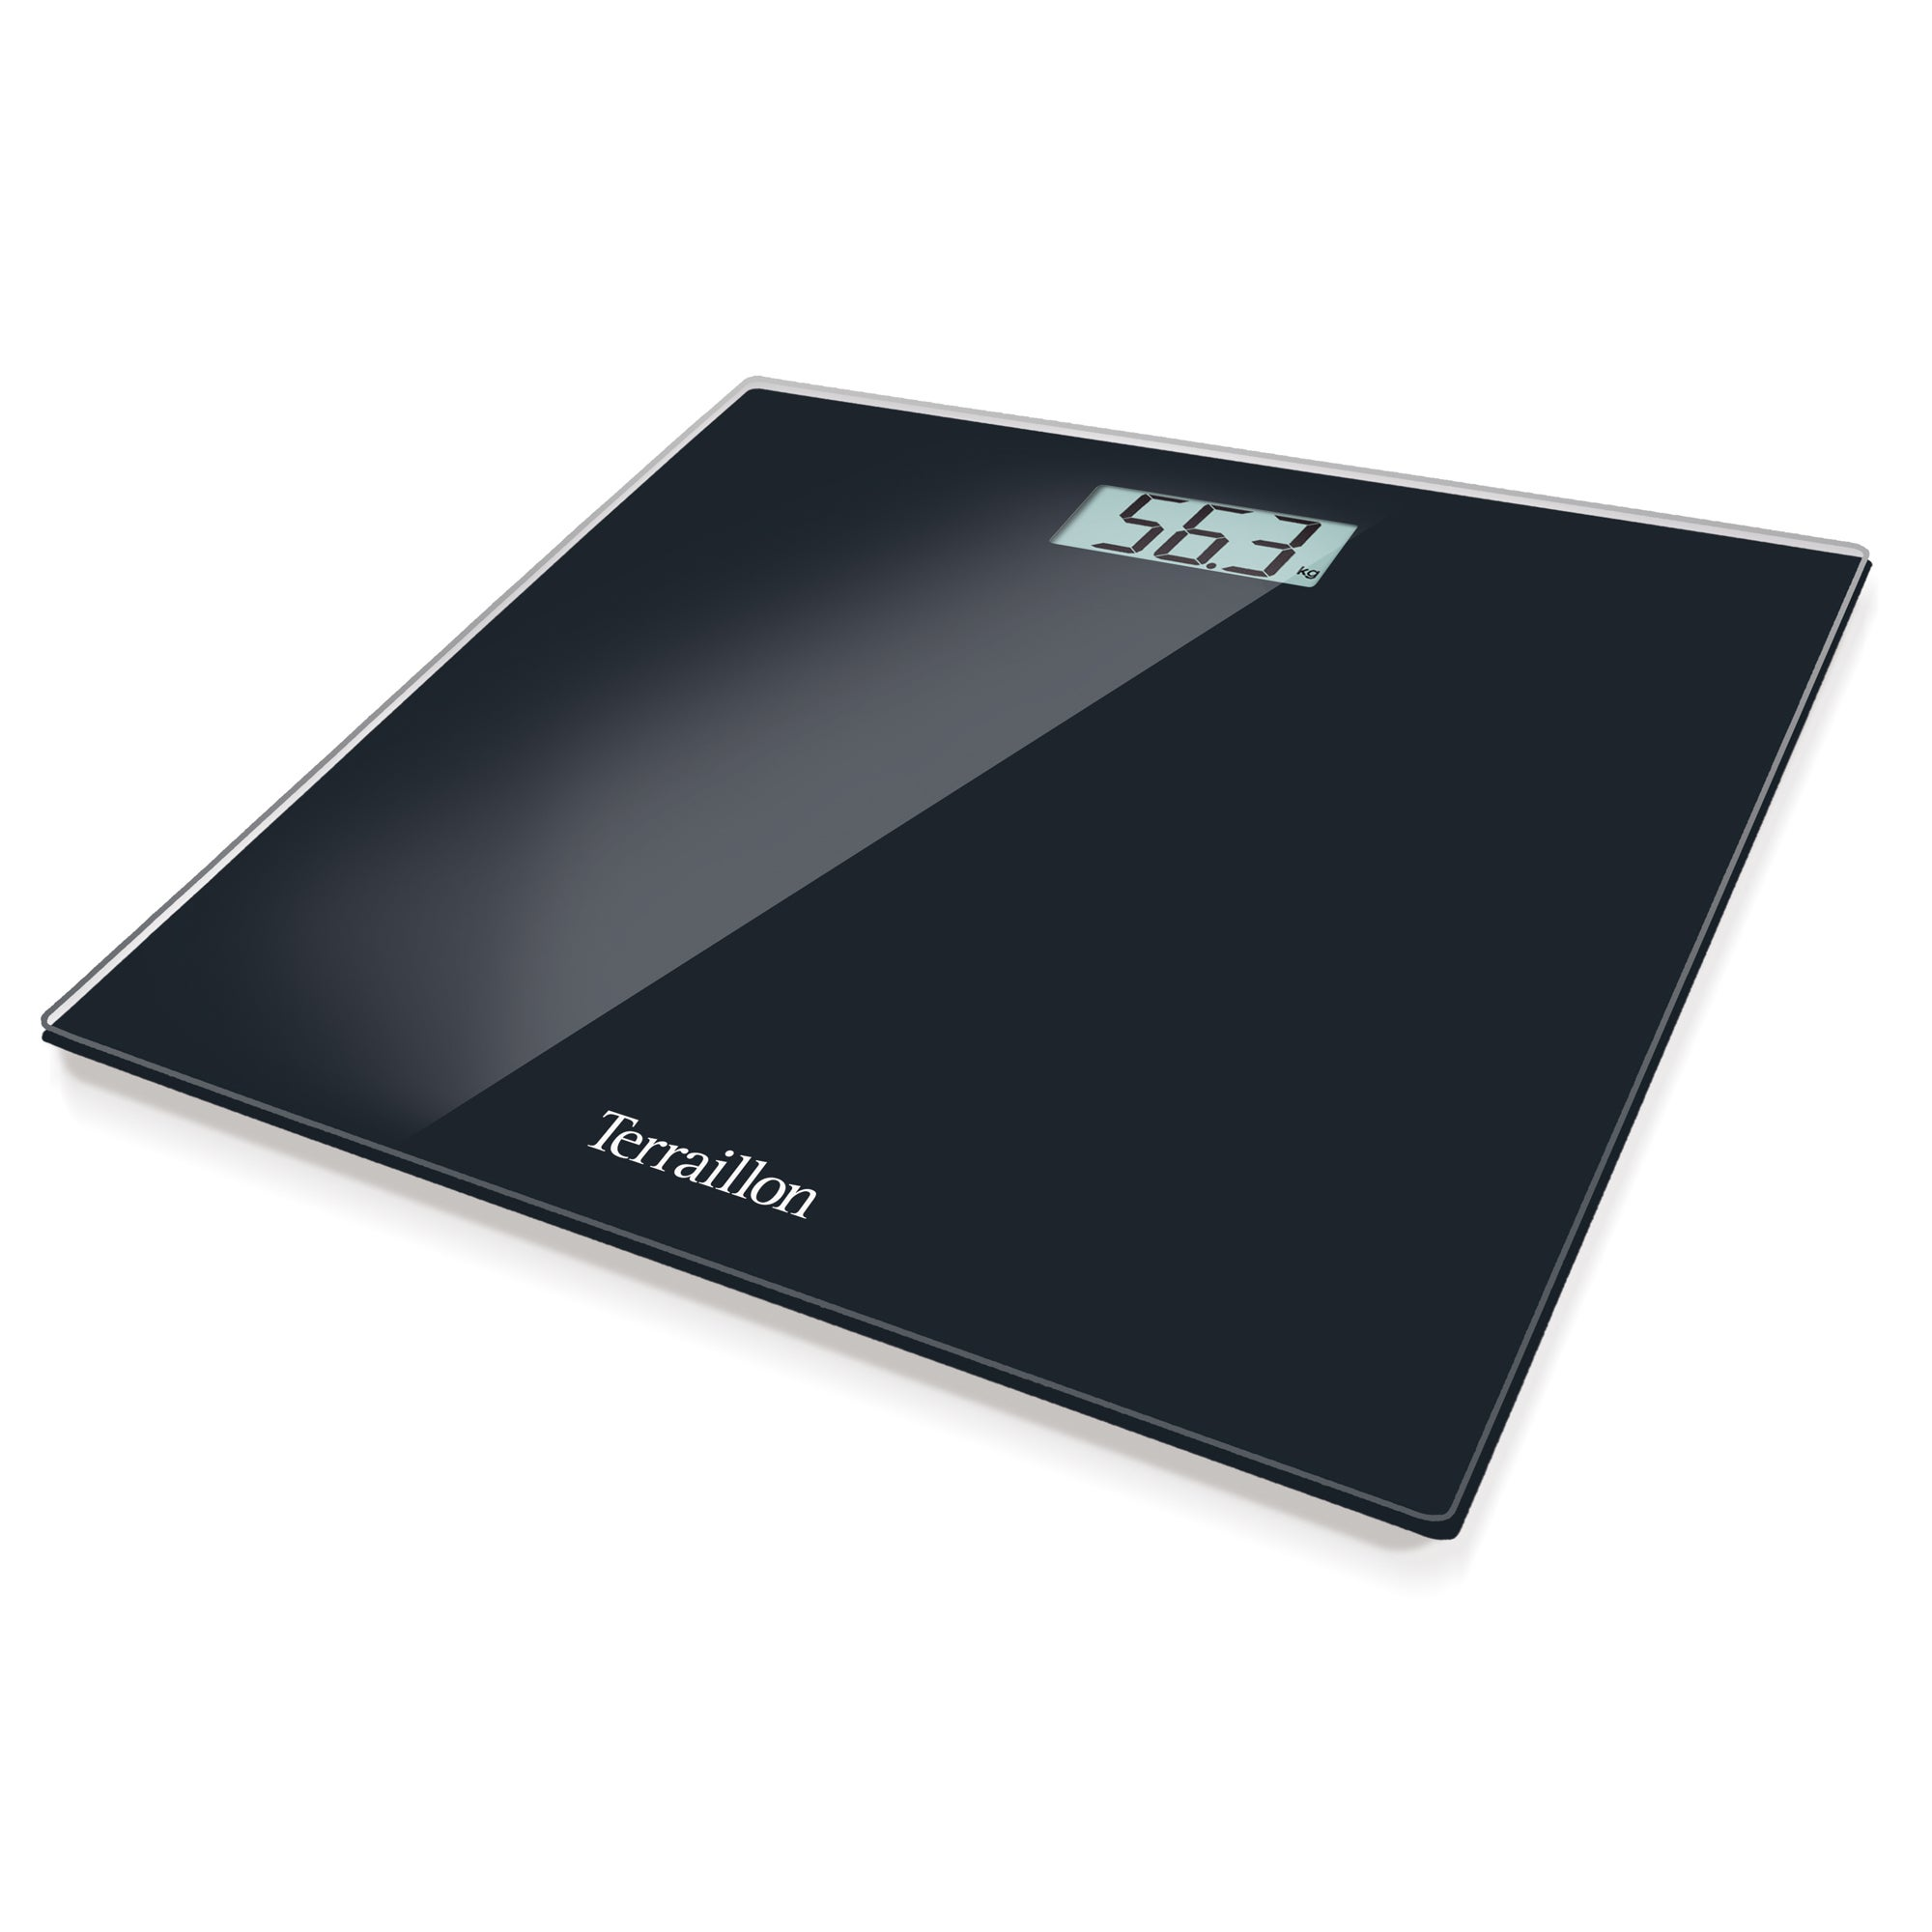 Image of Hanson HX6000 Slim Black Glass Electronic Scales Black